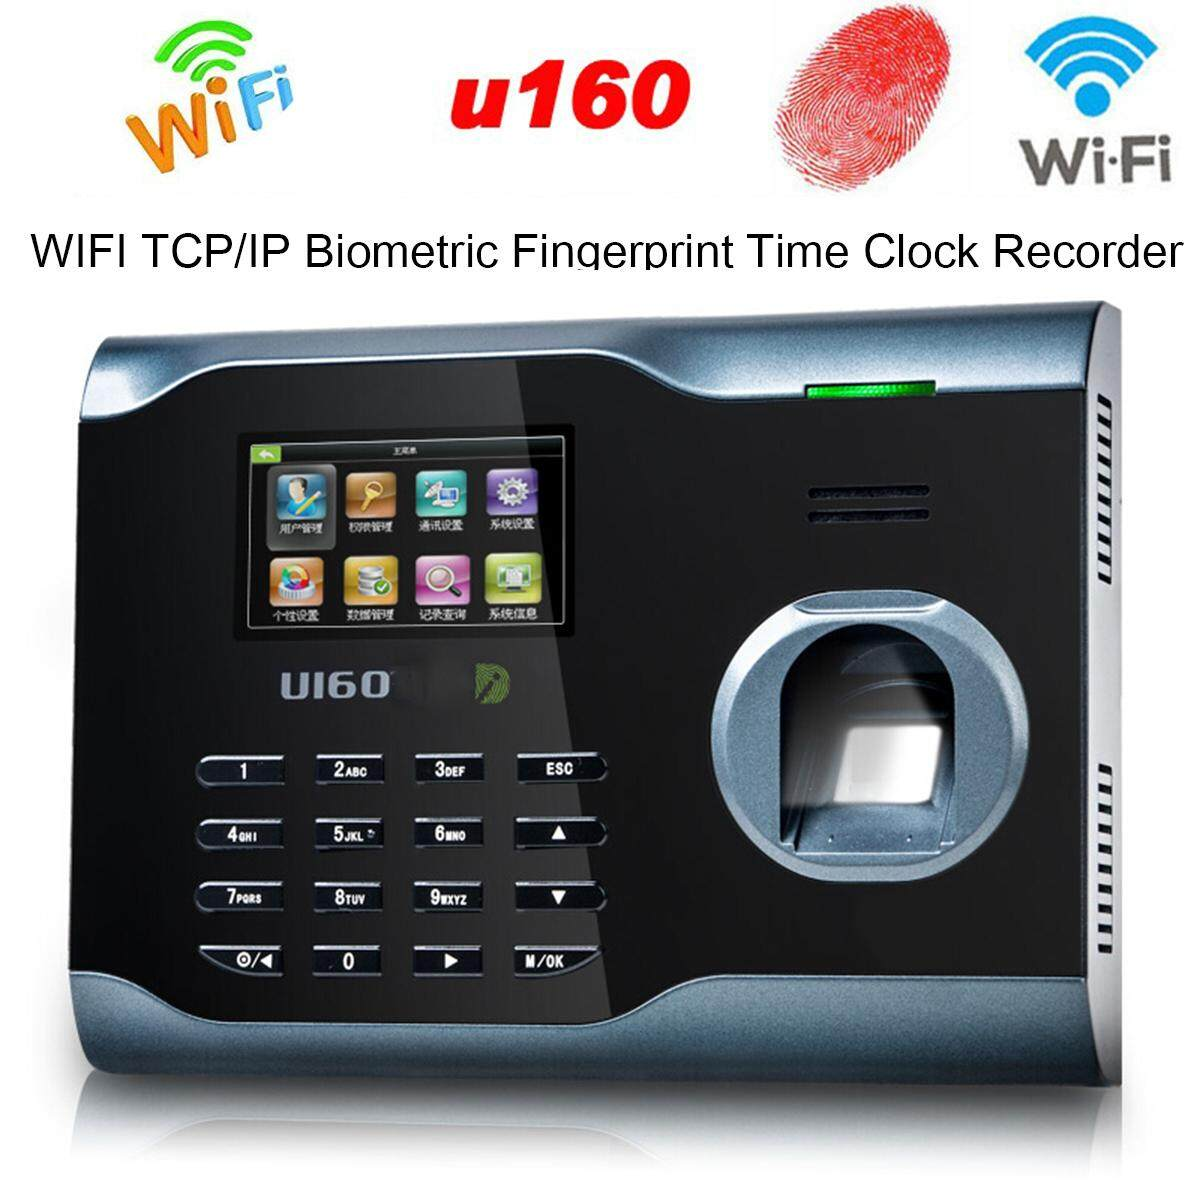 Biometric Fingerprint Attendance Time Clock+ WIFI +TCP/IP +USB, ZKSoftware Brand